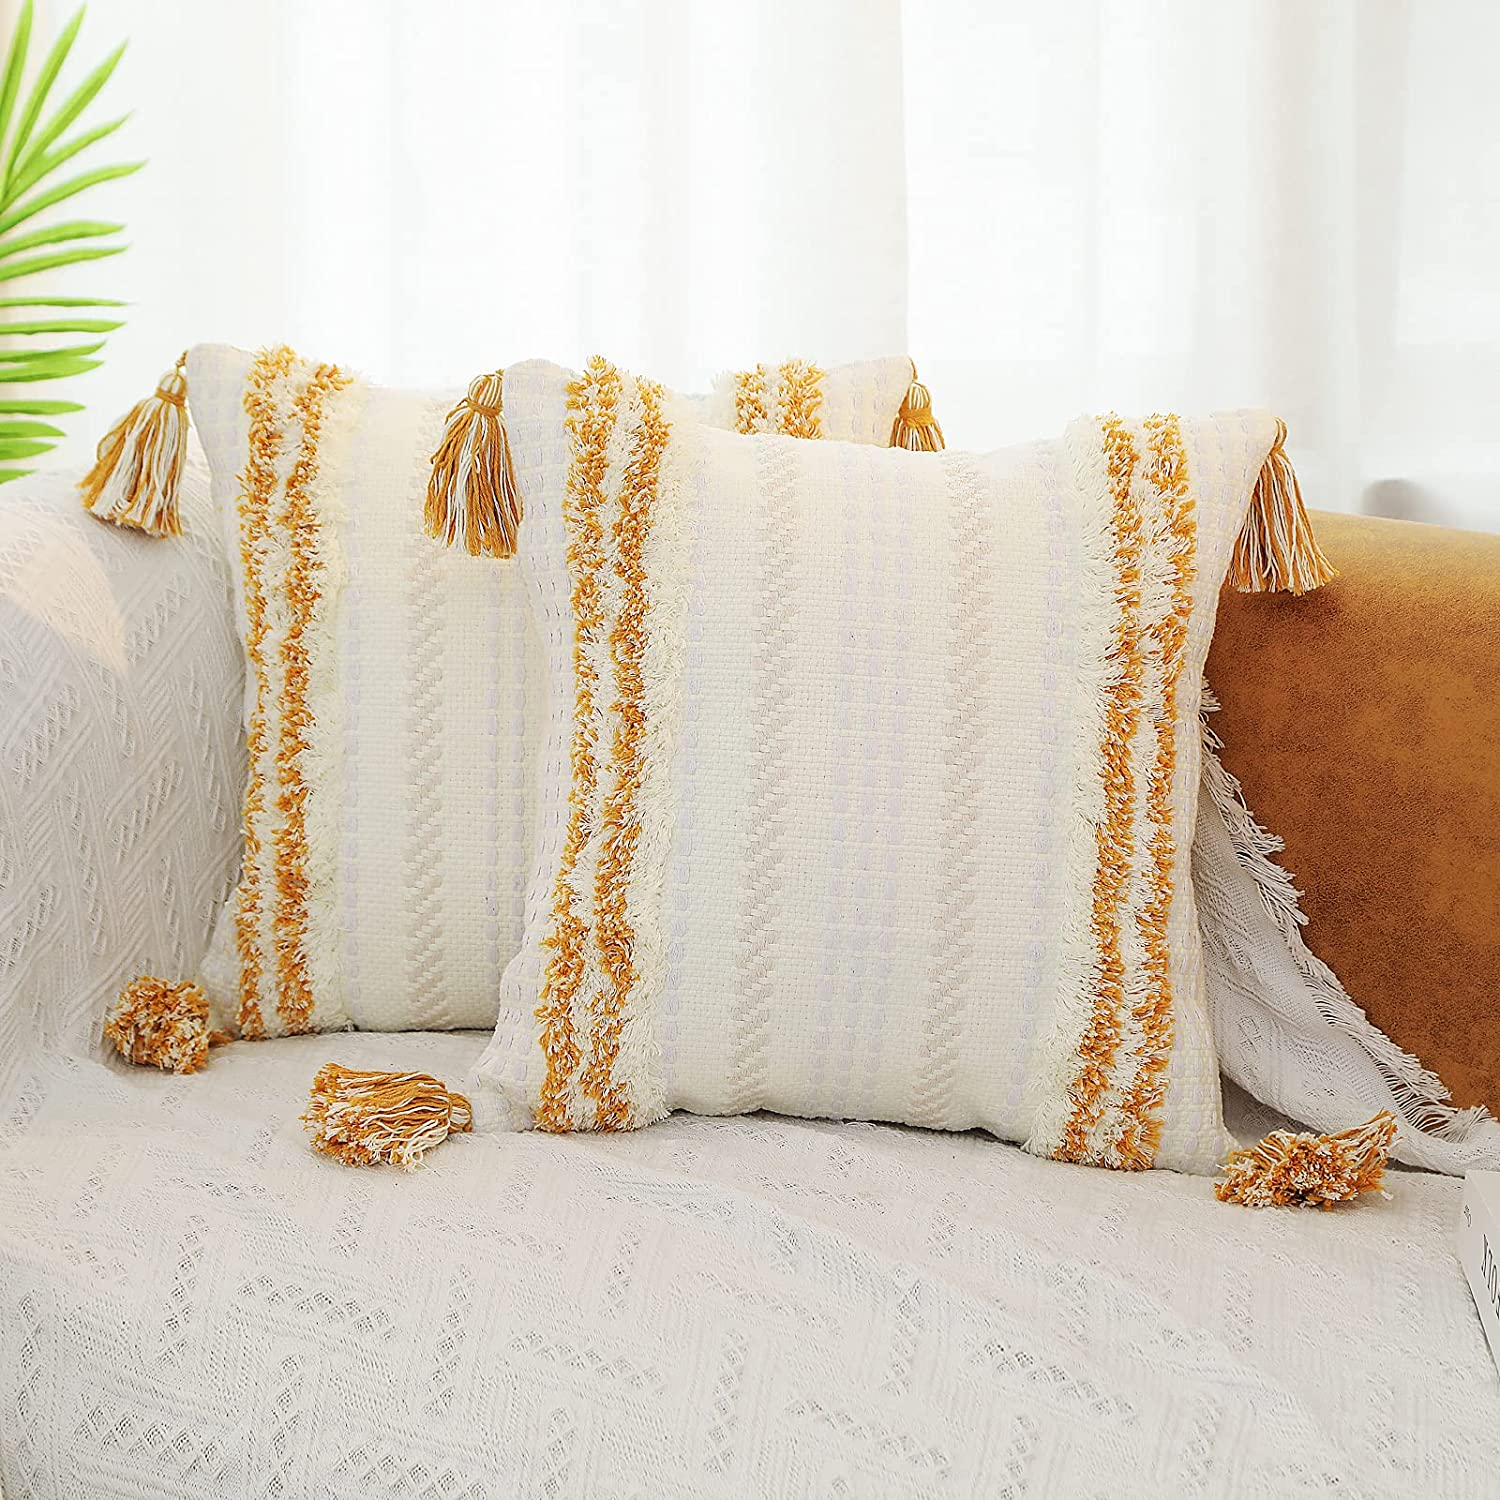 DR.NATURE Department store Set of 2 half Boho Decorative Throw for Couch Pillow Covers